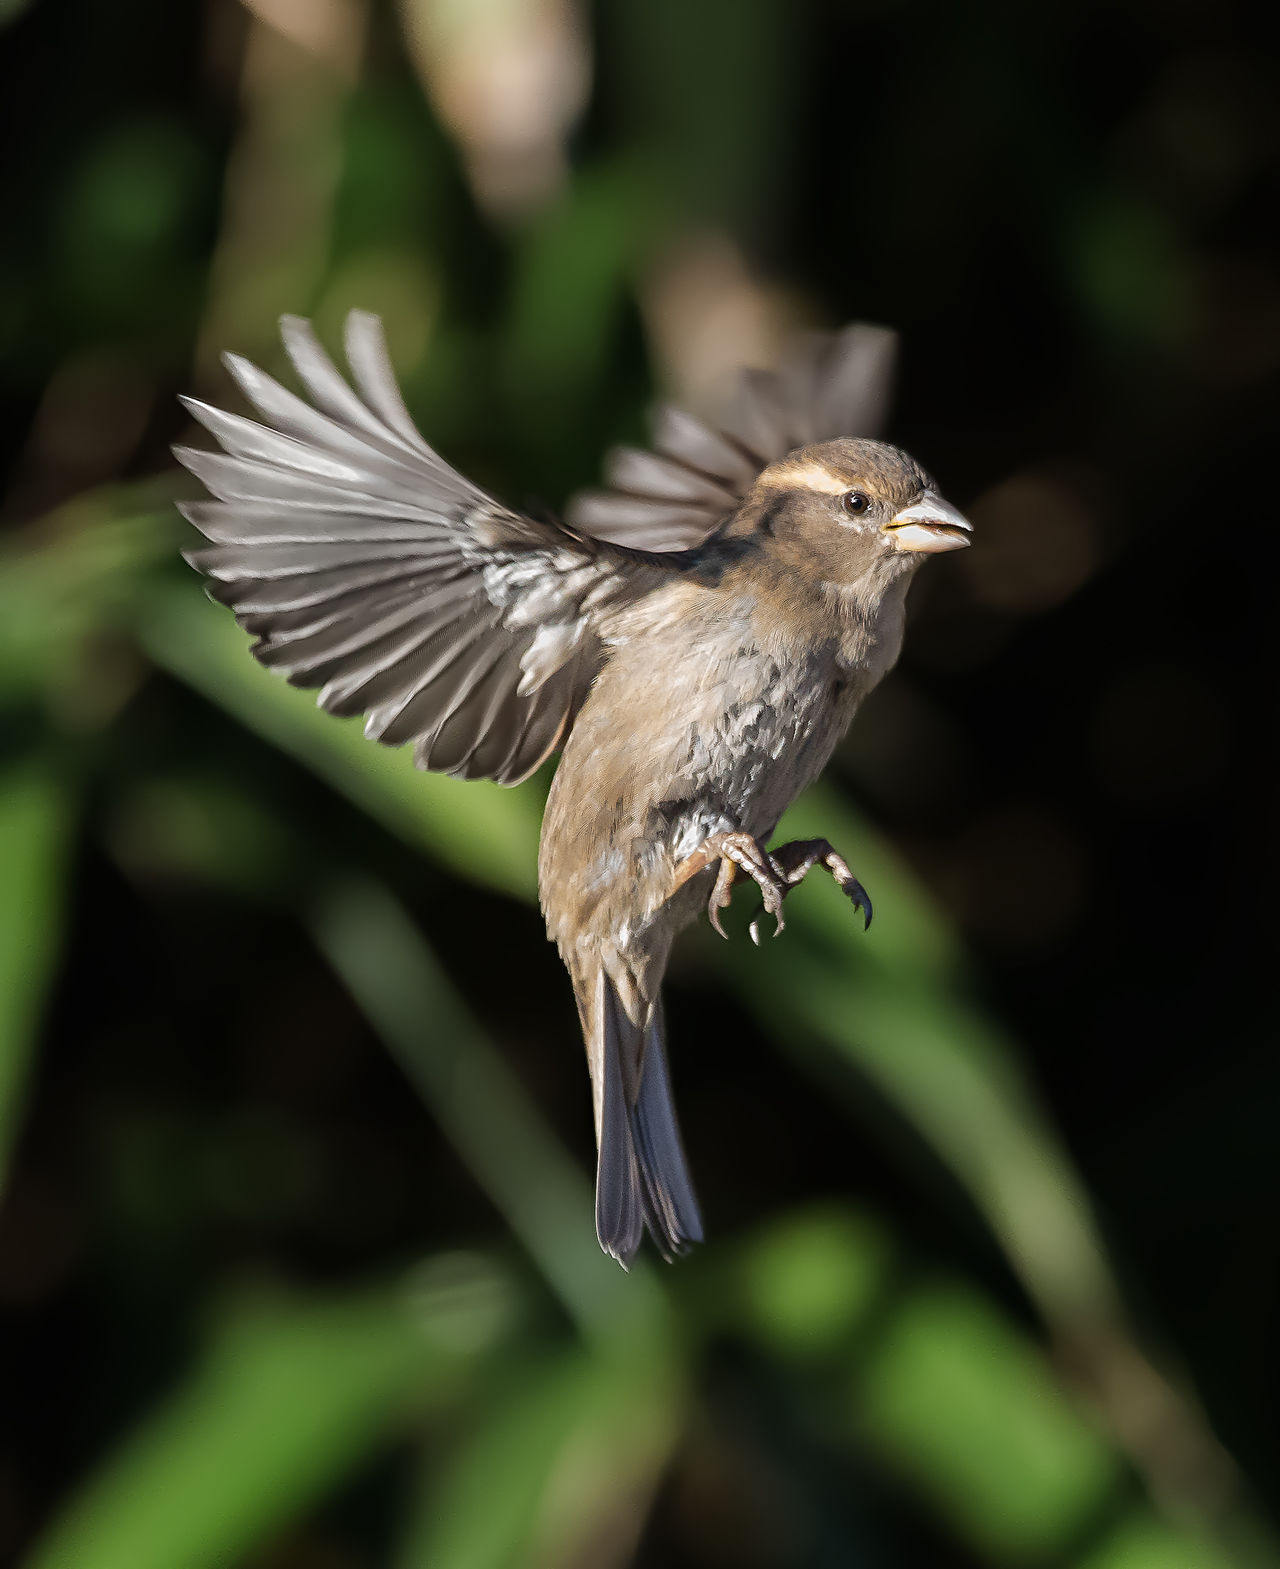 Sparrow in flight. Animal Wildlife Bird Close-up Flying Nature Outdoors Sparrow Spread Wings